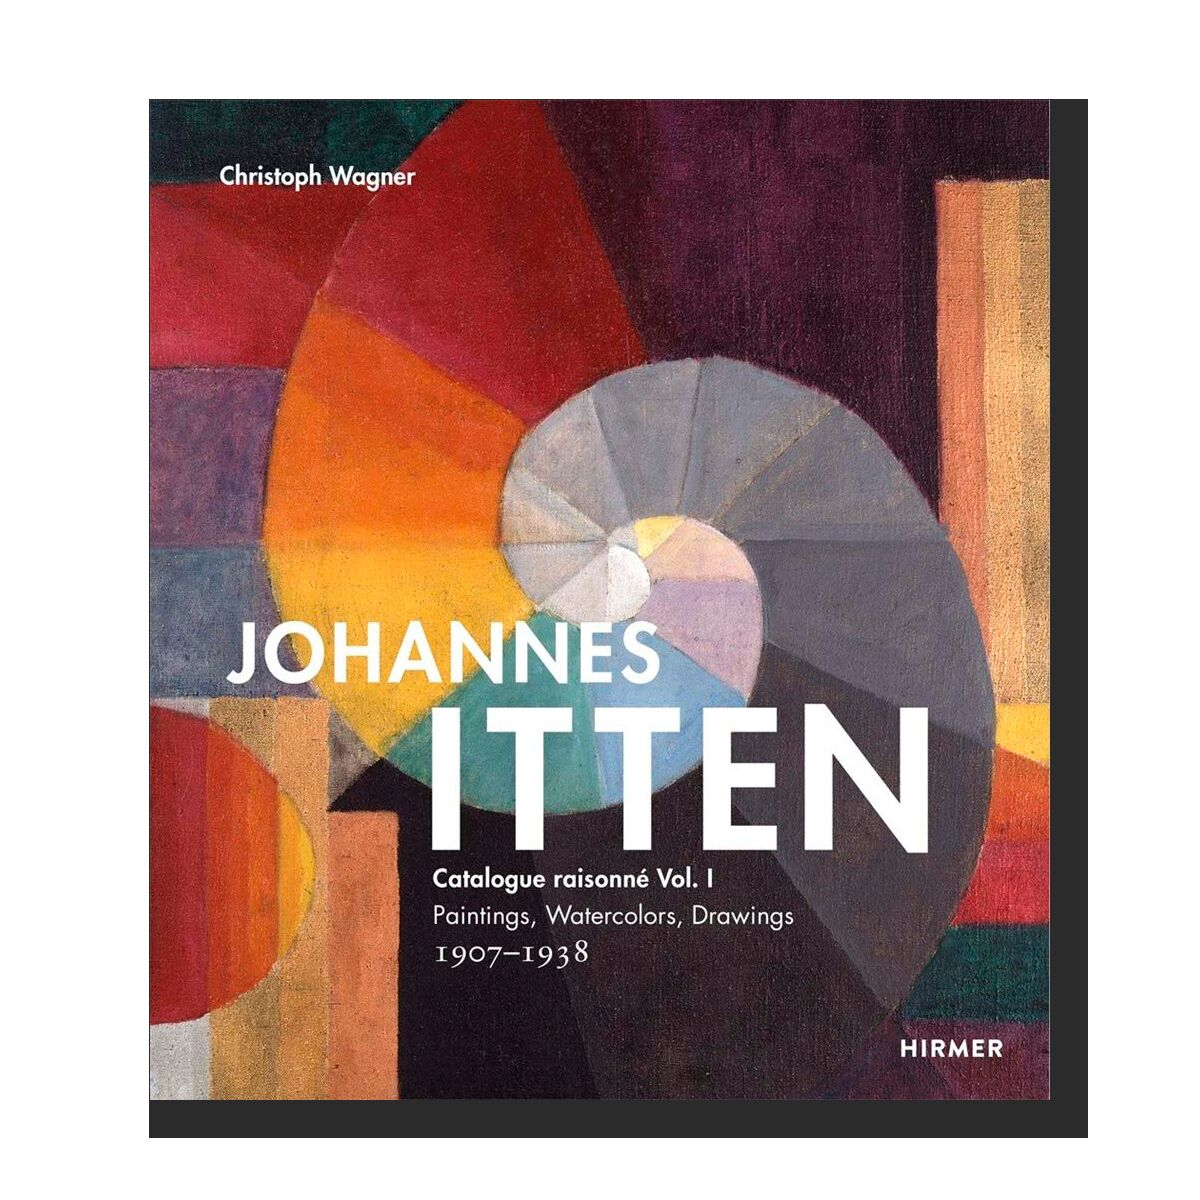 Johannes Itten: Catalogue Raisonné Vol. I. Paintings, Watercolors, Drawings. 1907-1938